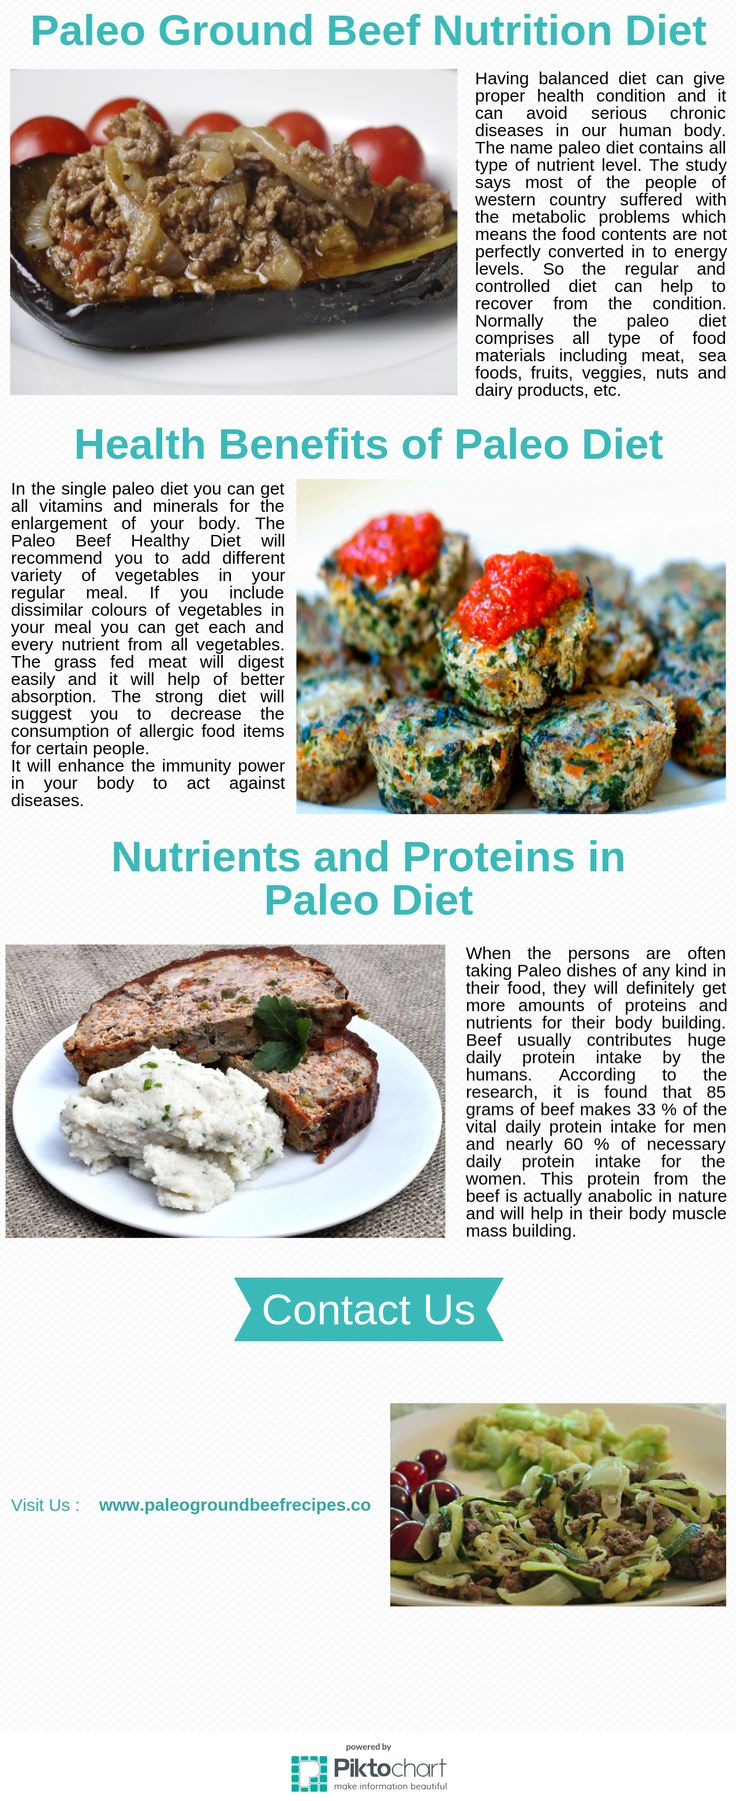 The meat products, especially beef contains high rich protein content. So it plays major role in muscle development. The fat content is reduced in this diet control plan.